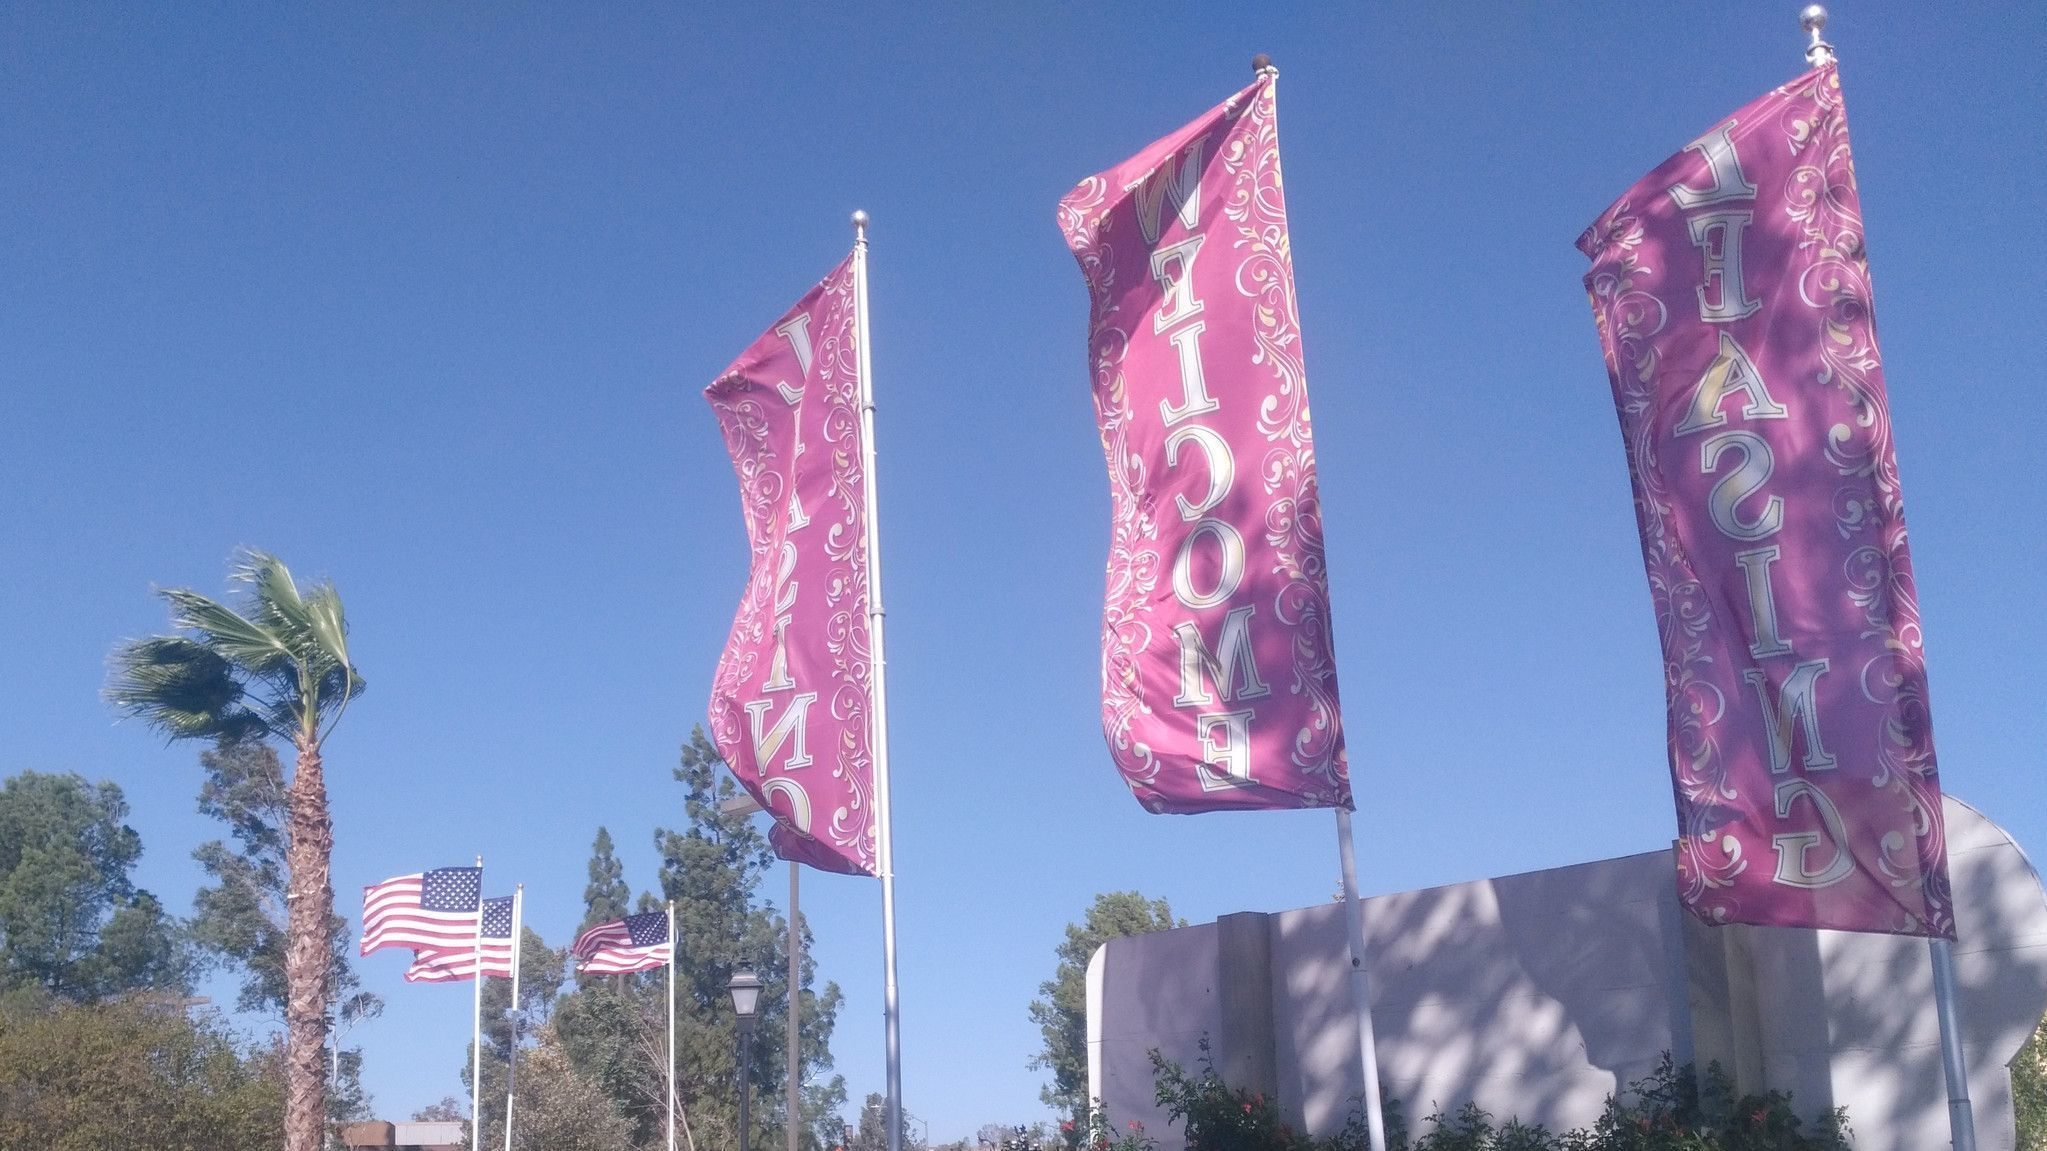 Leasing banners and flags flap in the wind at Quail Run apartments on 14th Street.